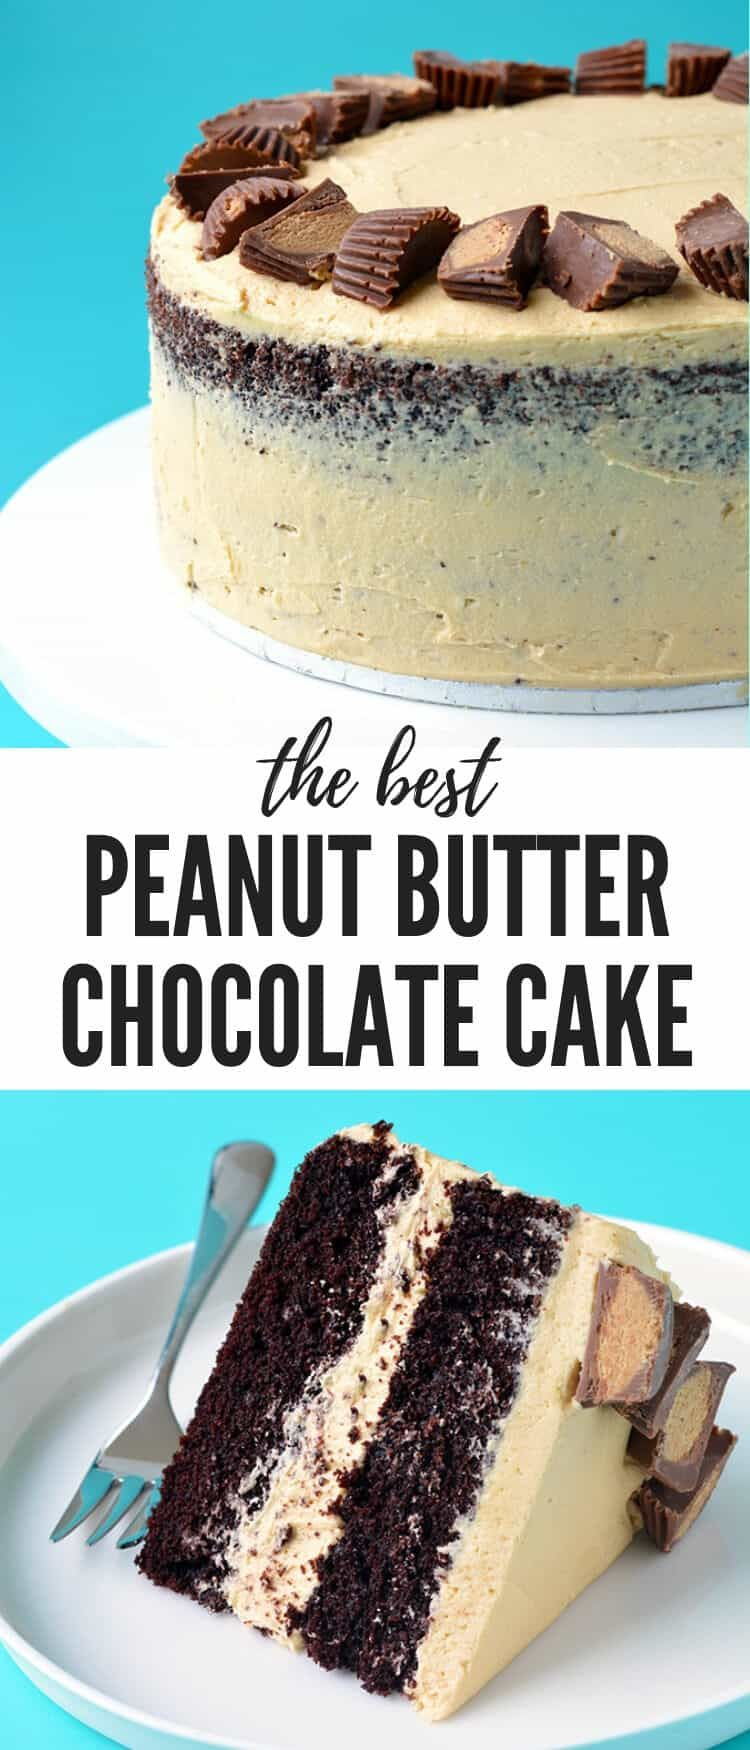 10 desserts Birthday peanut butter cups ideas